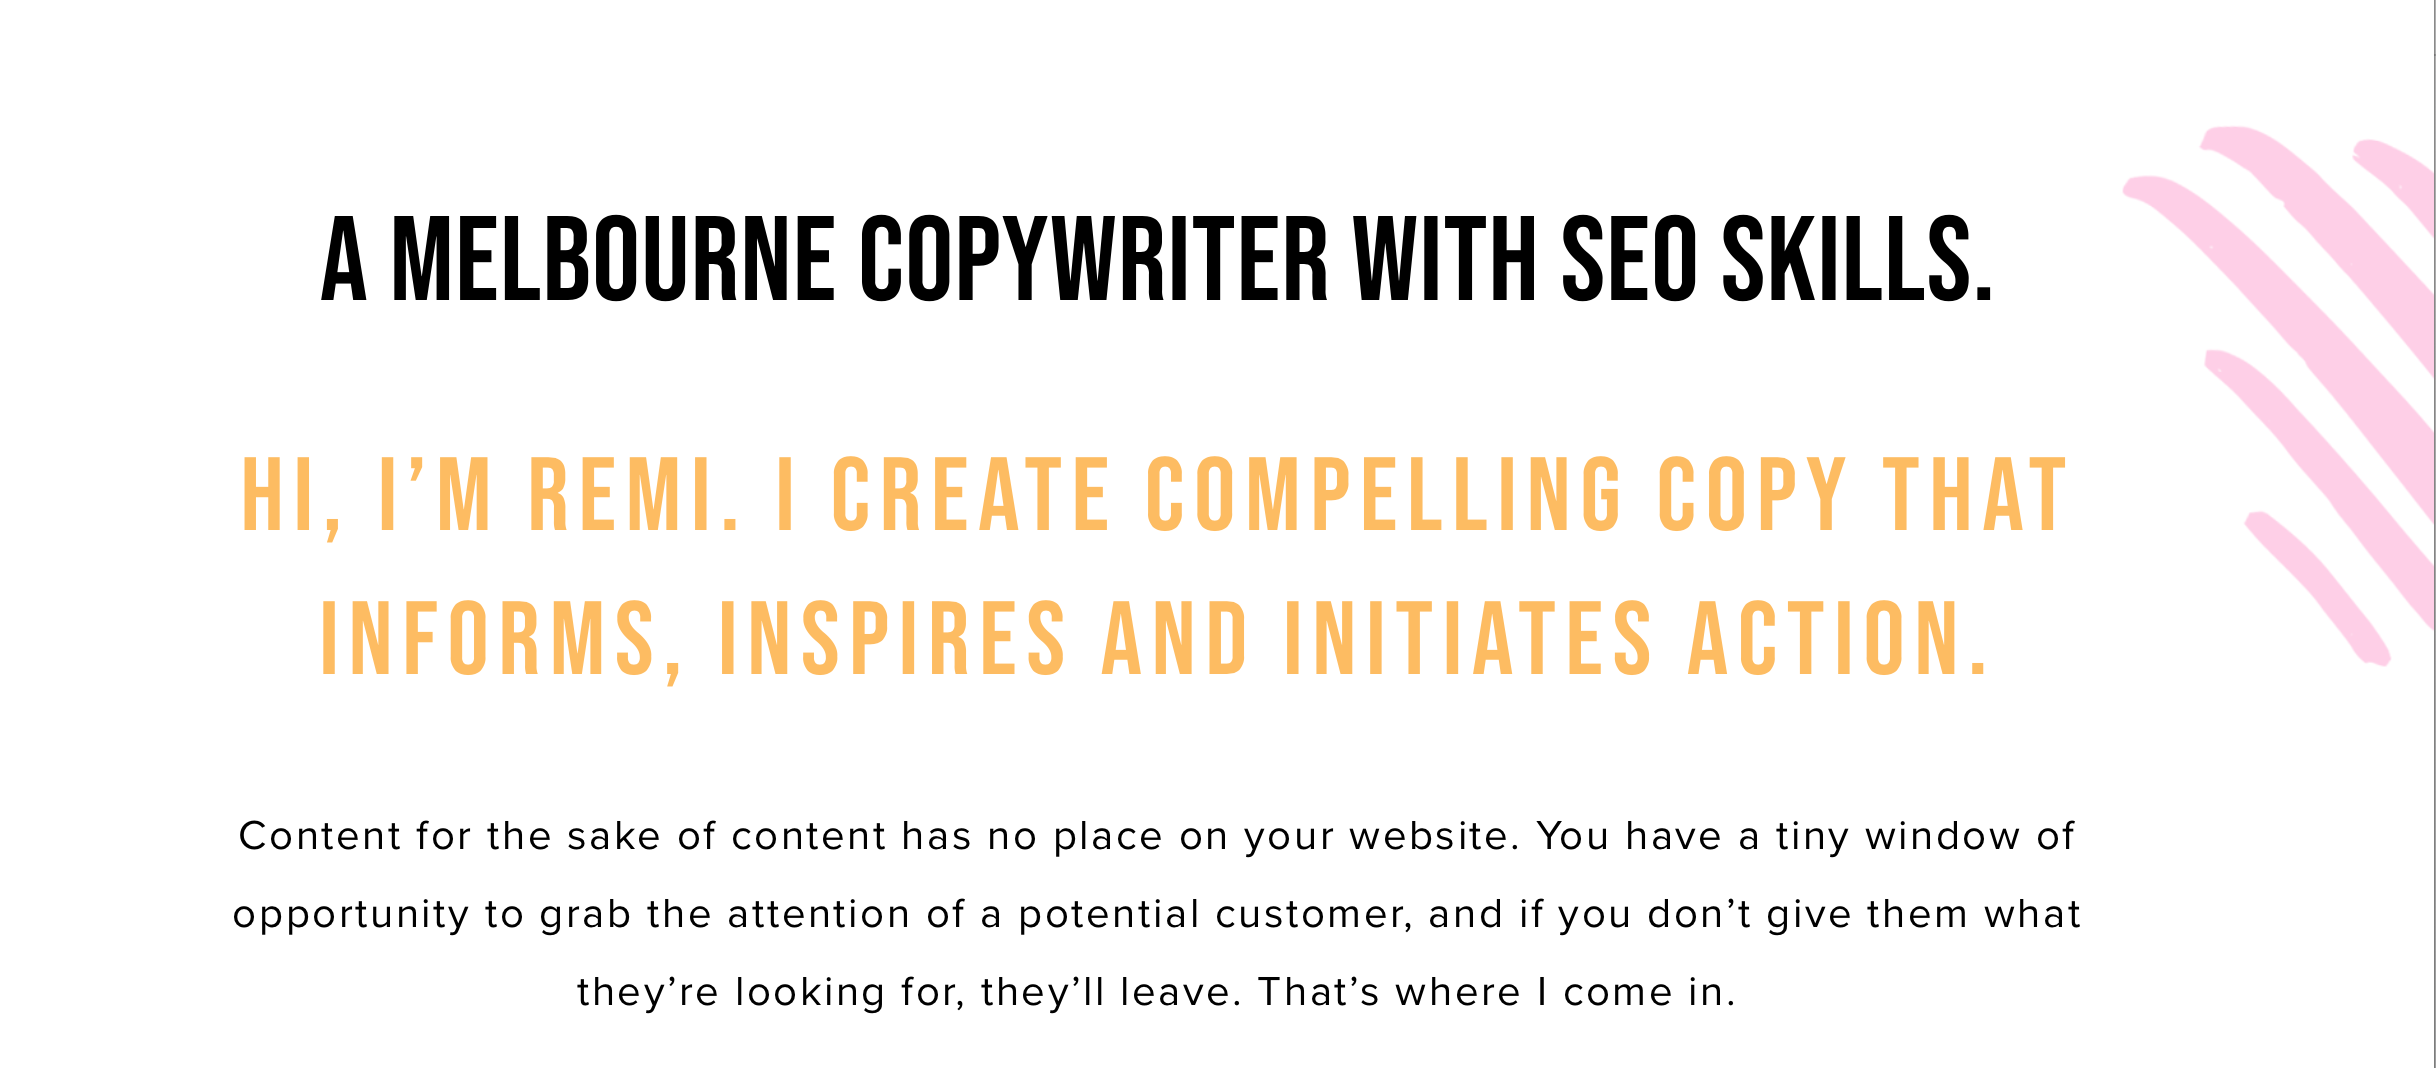 The most important information is the fact that I am a Melbourne copywriter who knows SEO. If someone was looking for an SEO copywriter, they would know right away that they were on the right website.